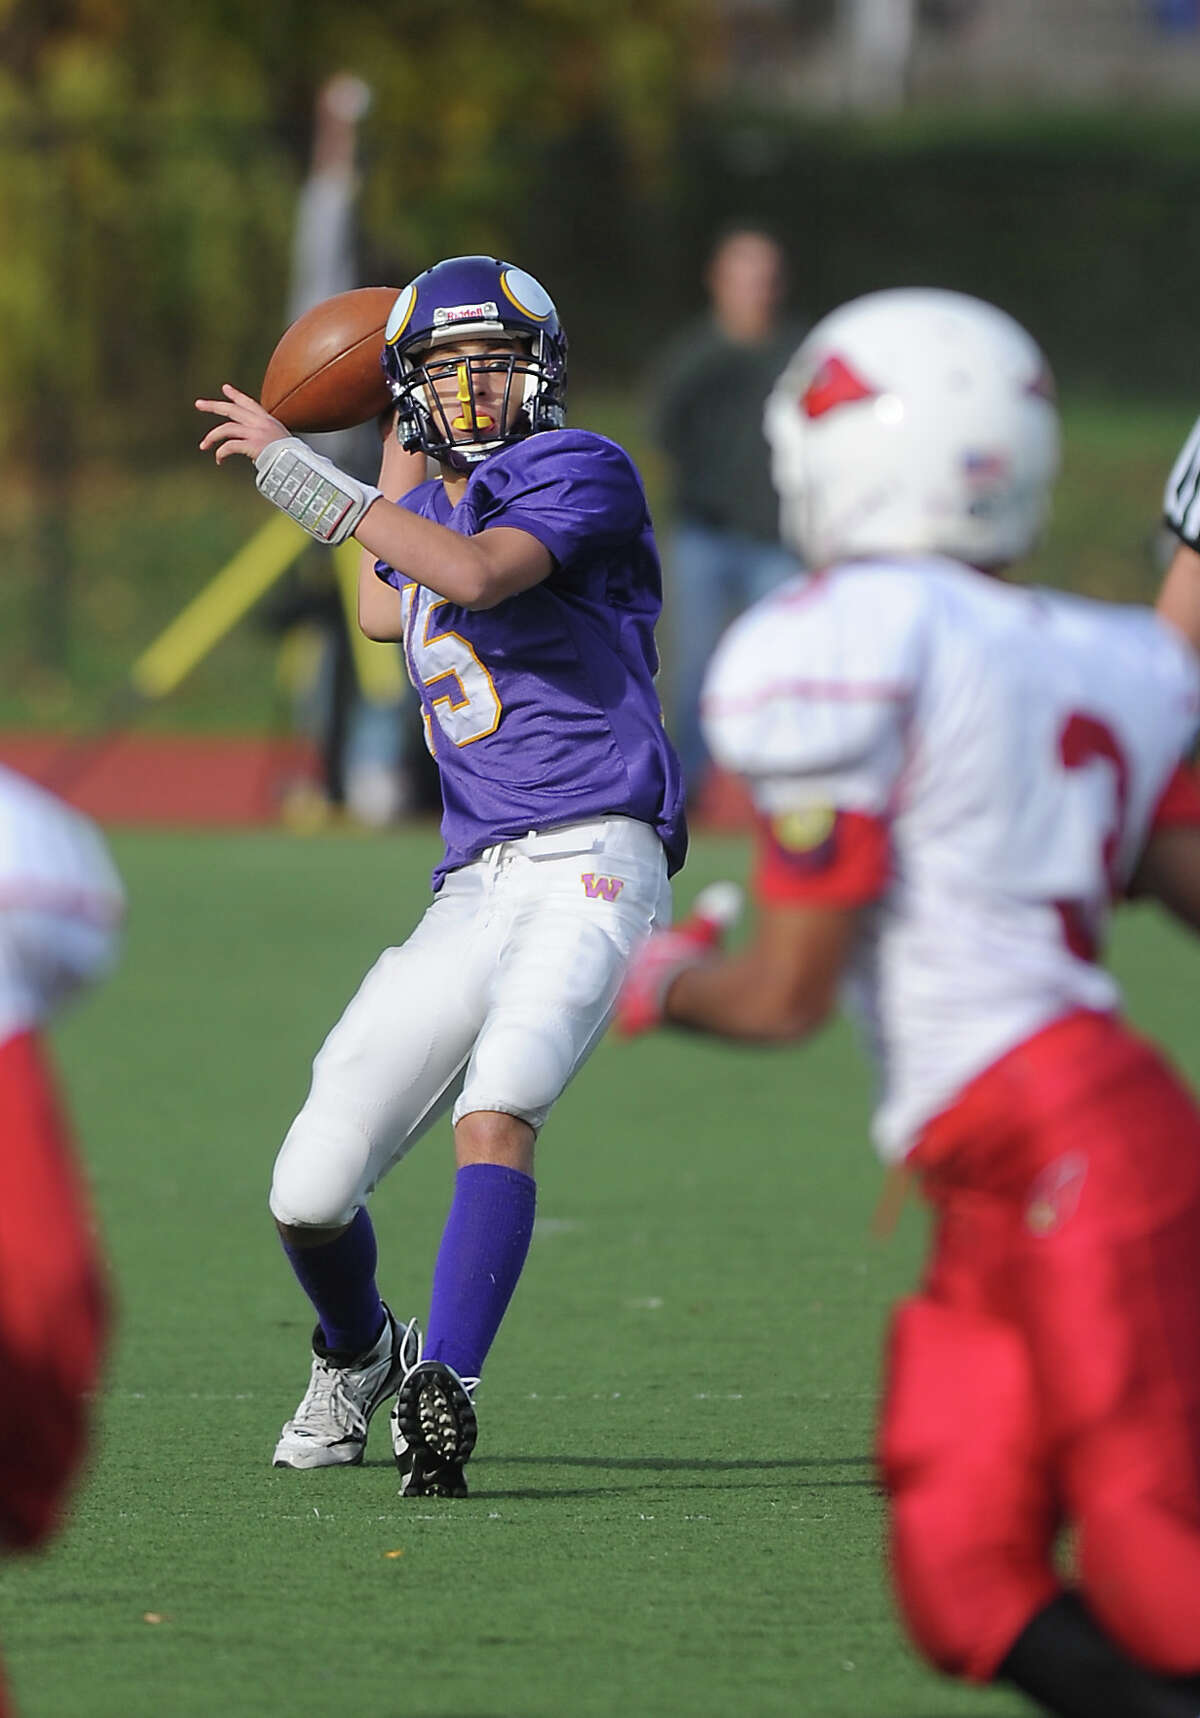 Westhill High School quarterback Peter Cernansky looks to throw against Greenwich High School in football action in Stamford, Conn. on Saturday October 30, 2010.